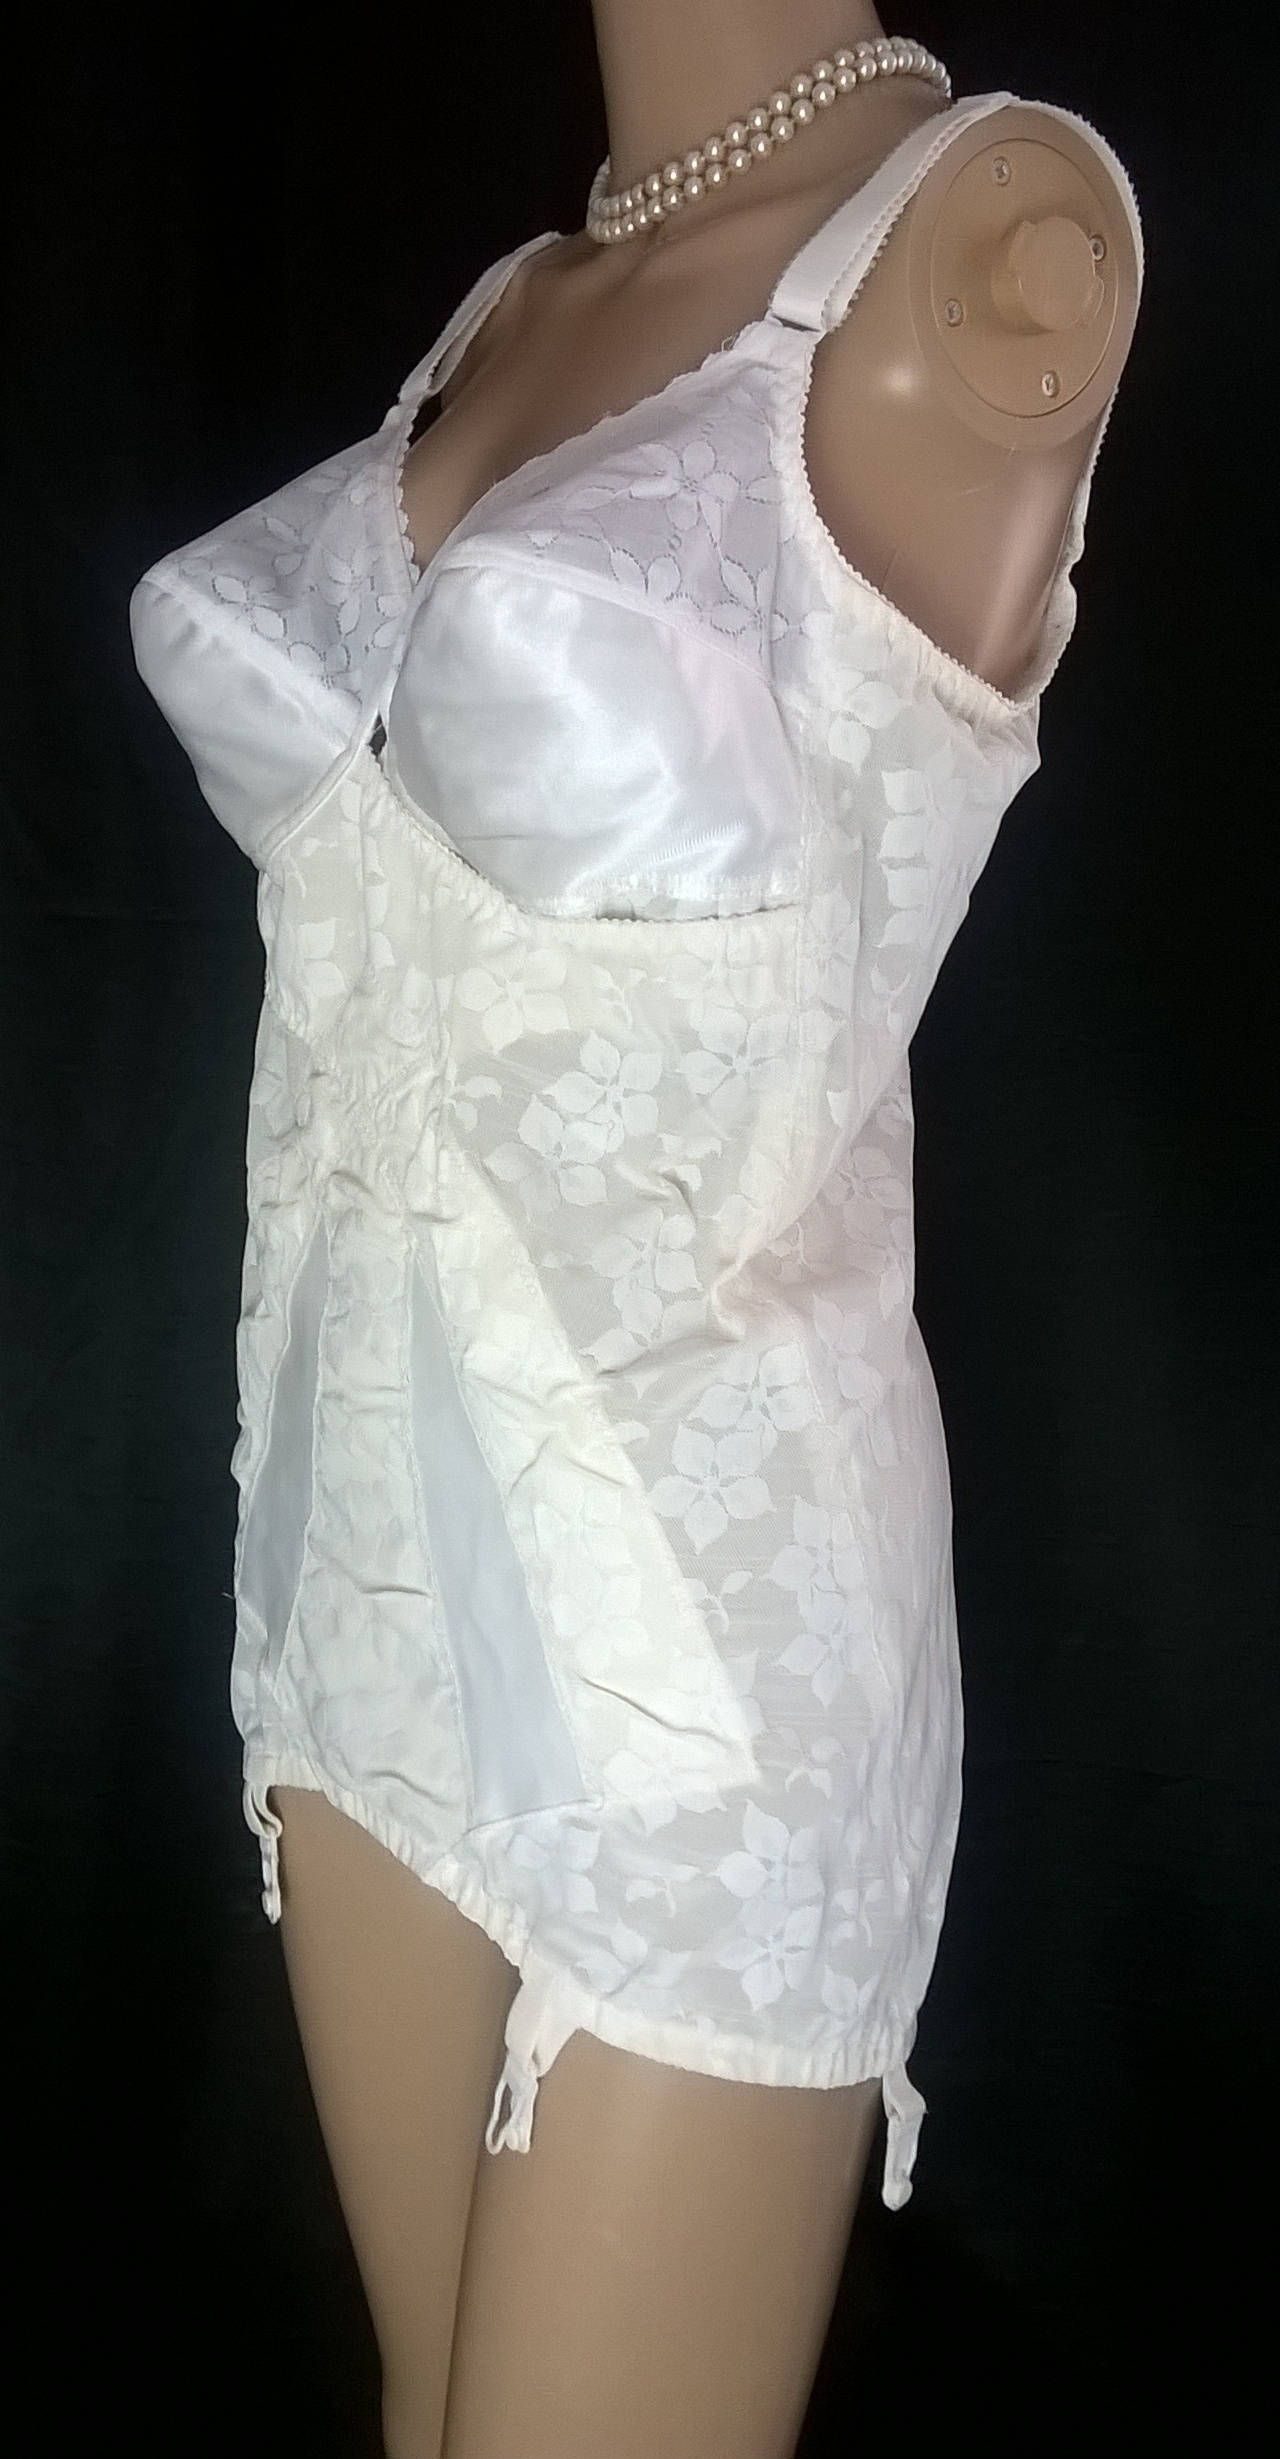 Vintage 40C Corselette Cream Girdle With Four Garters Vintage Lingerie